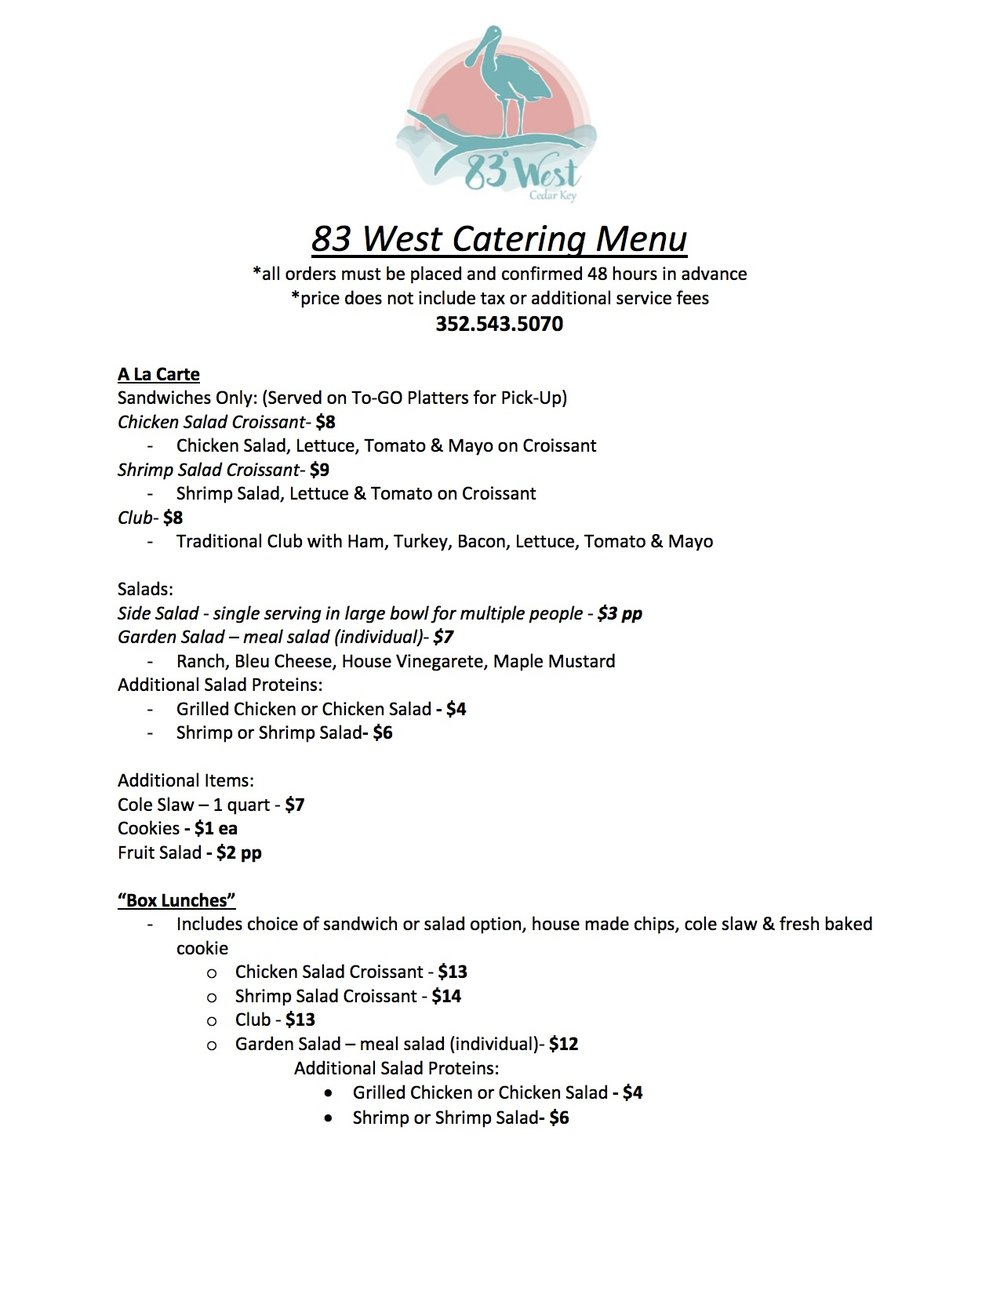 83 West Catering Menu.jpg